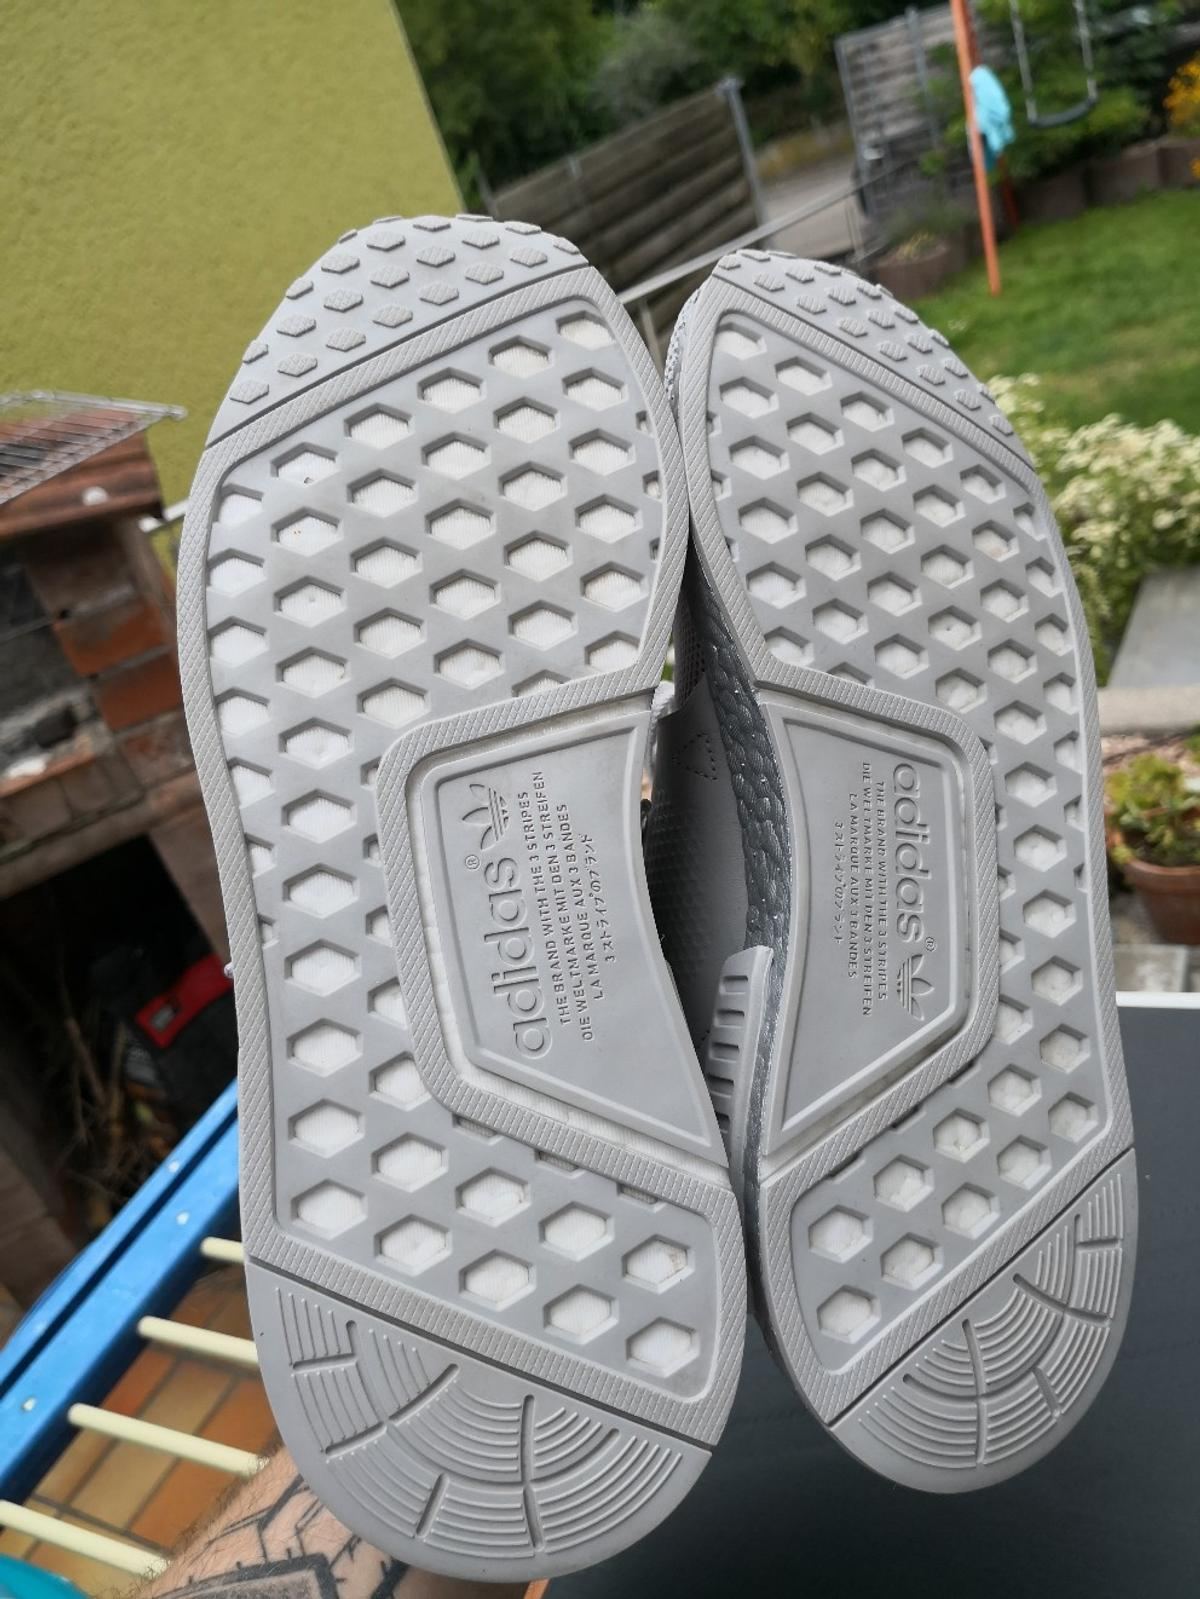 Adidas NMD Xr1 40 23 in 76756 Bellheim for ?70.00 for sale